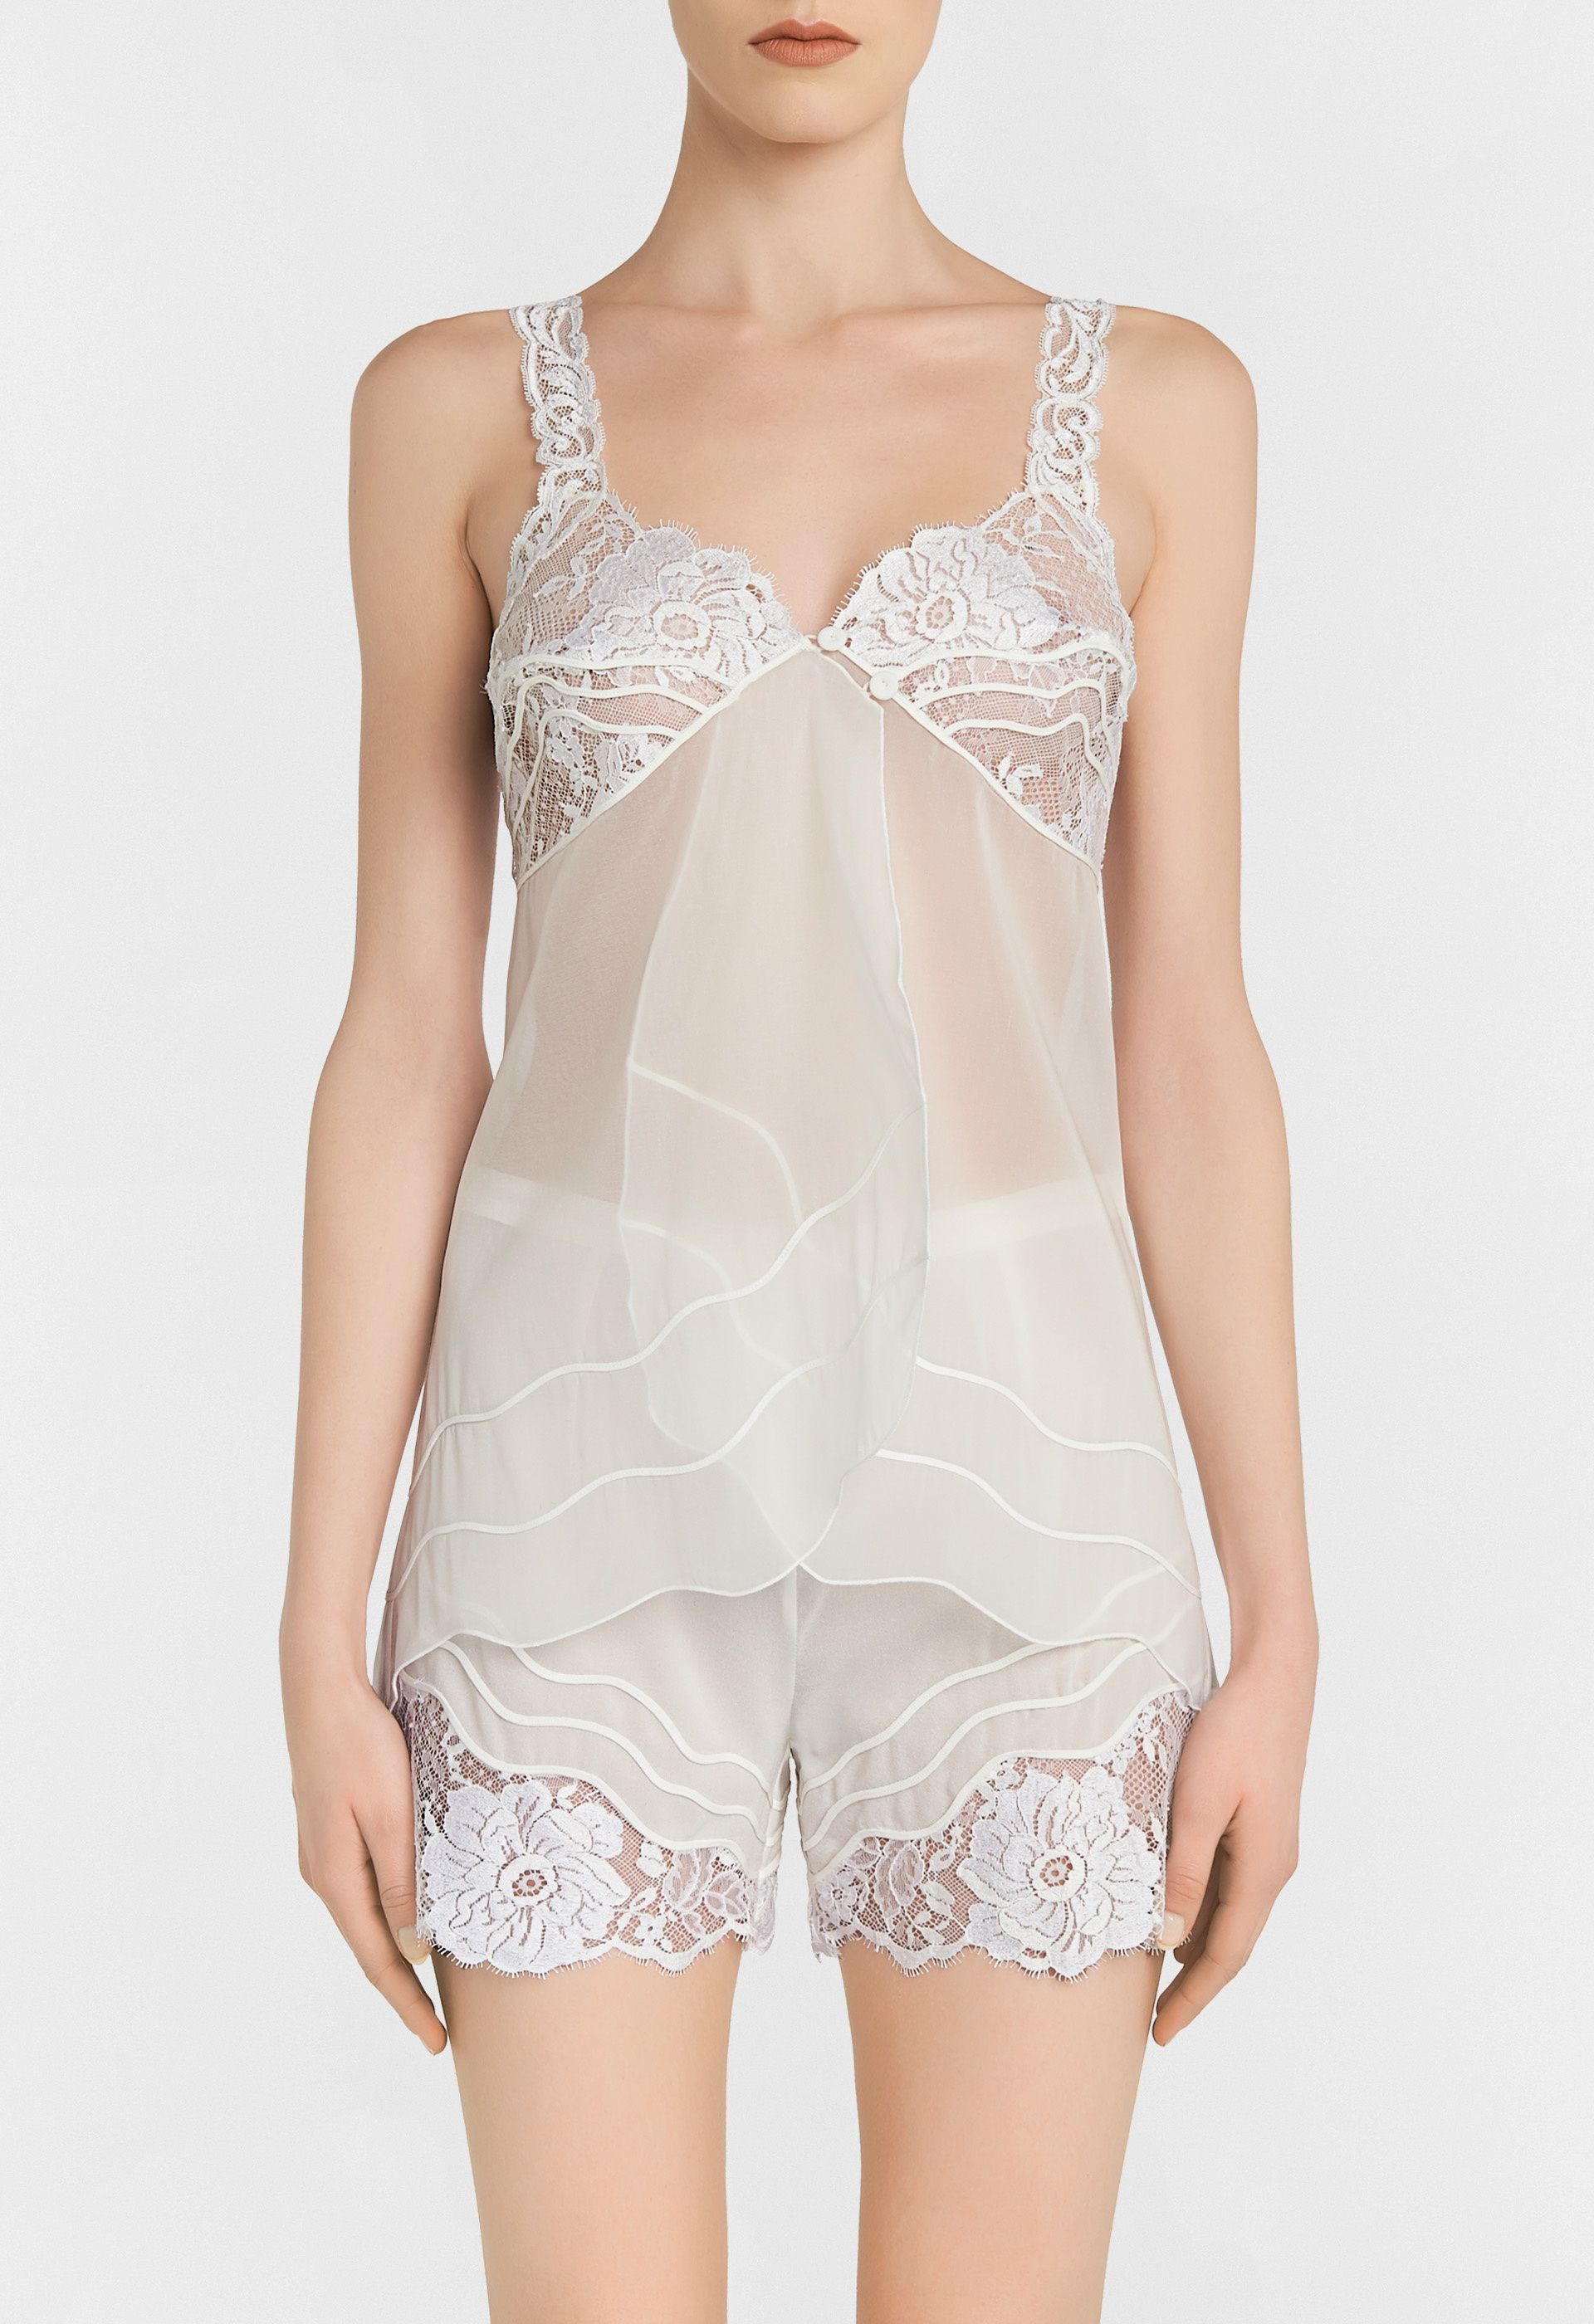 cb44201148 Off-white organza pyjama top with Leavers lace and soutache embroidery -  CFIPLM0011660 BNA017